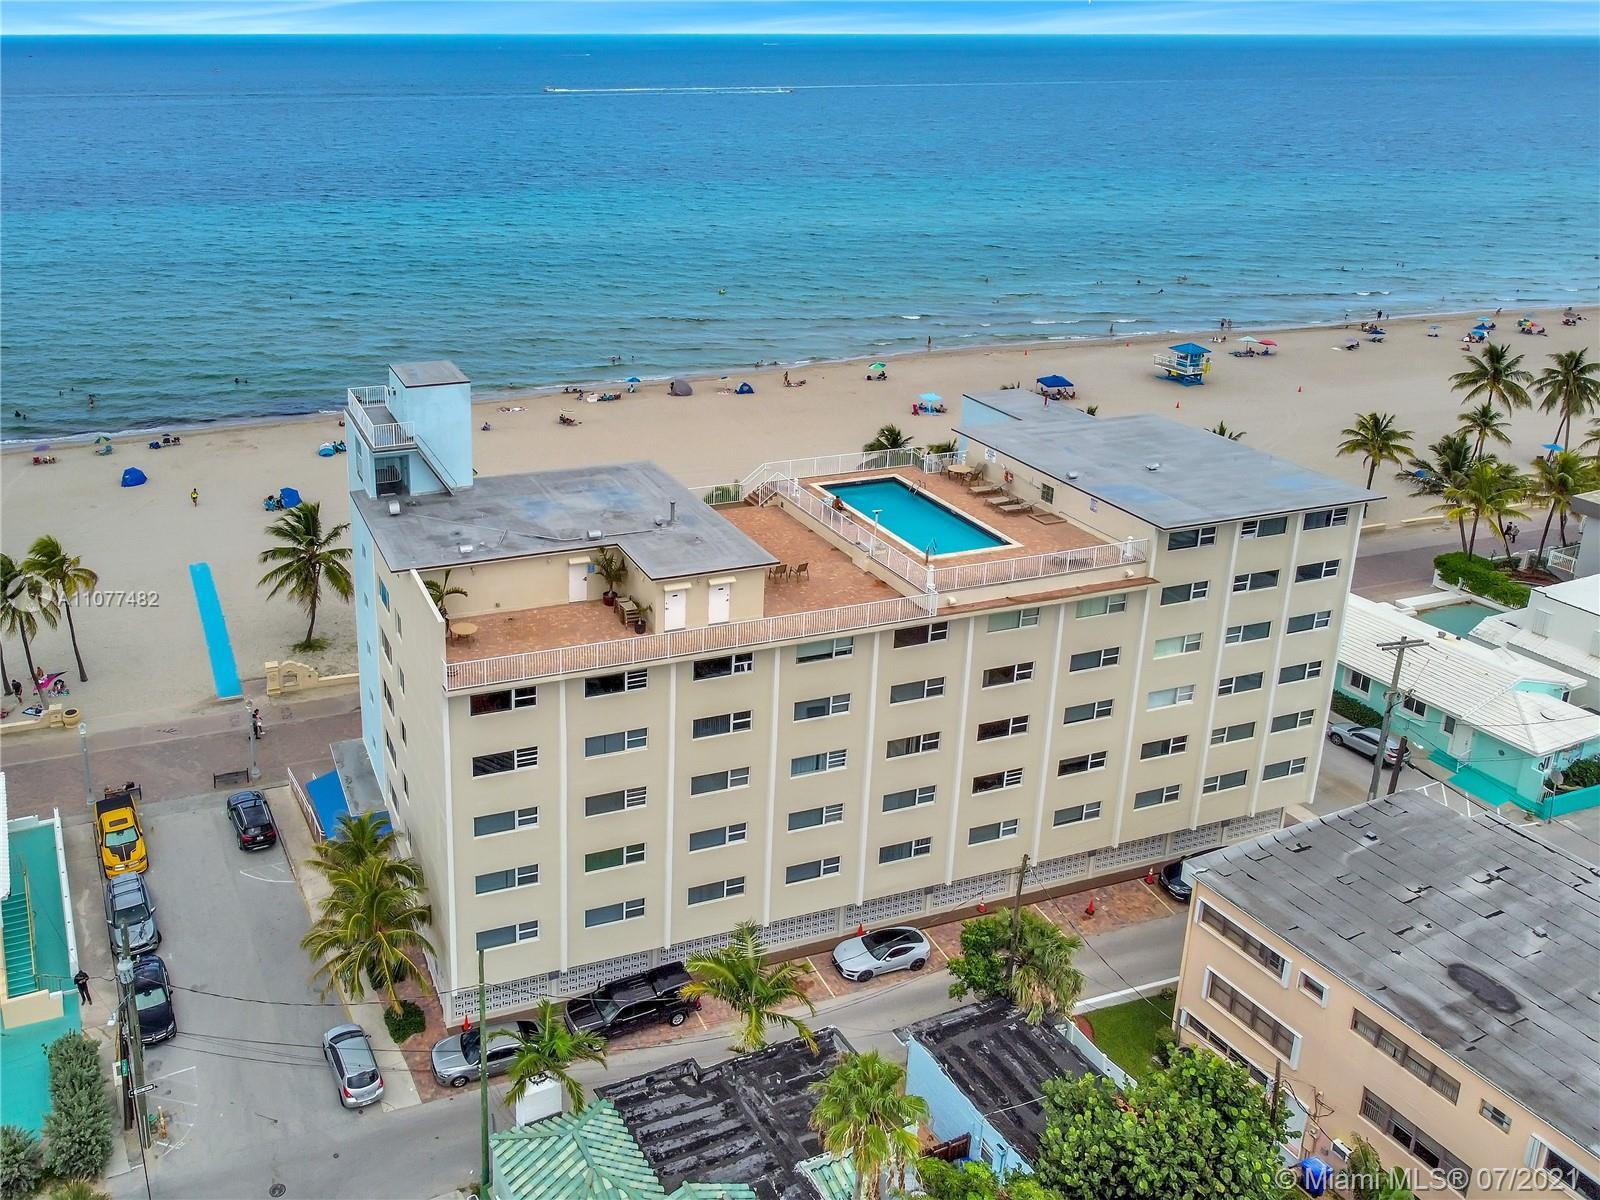 Breathtaking view of the Ocean!! Gorgeous 1/1 oceanfront condo, come and enjoy this beautiful gem ra